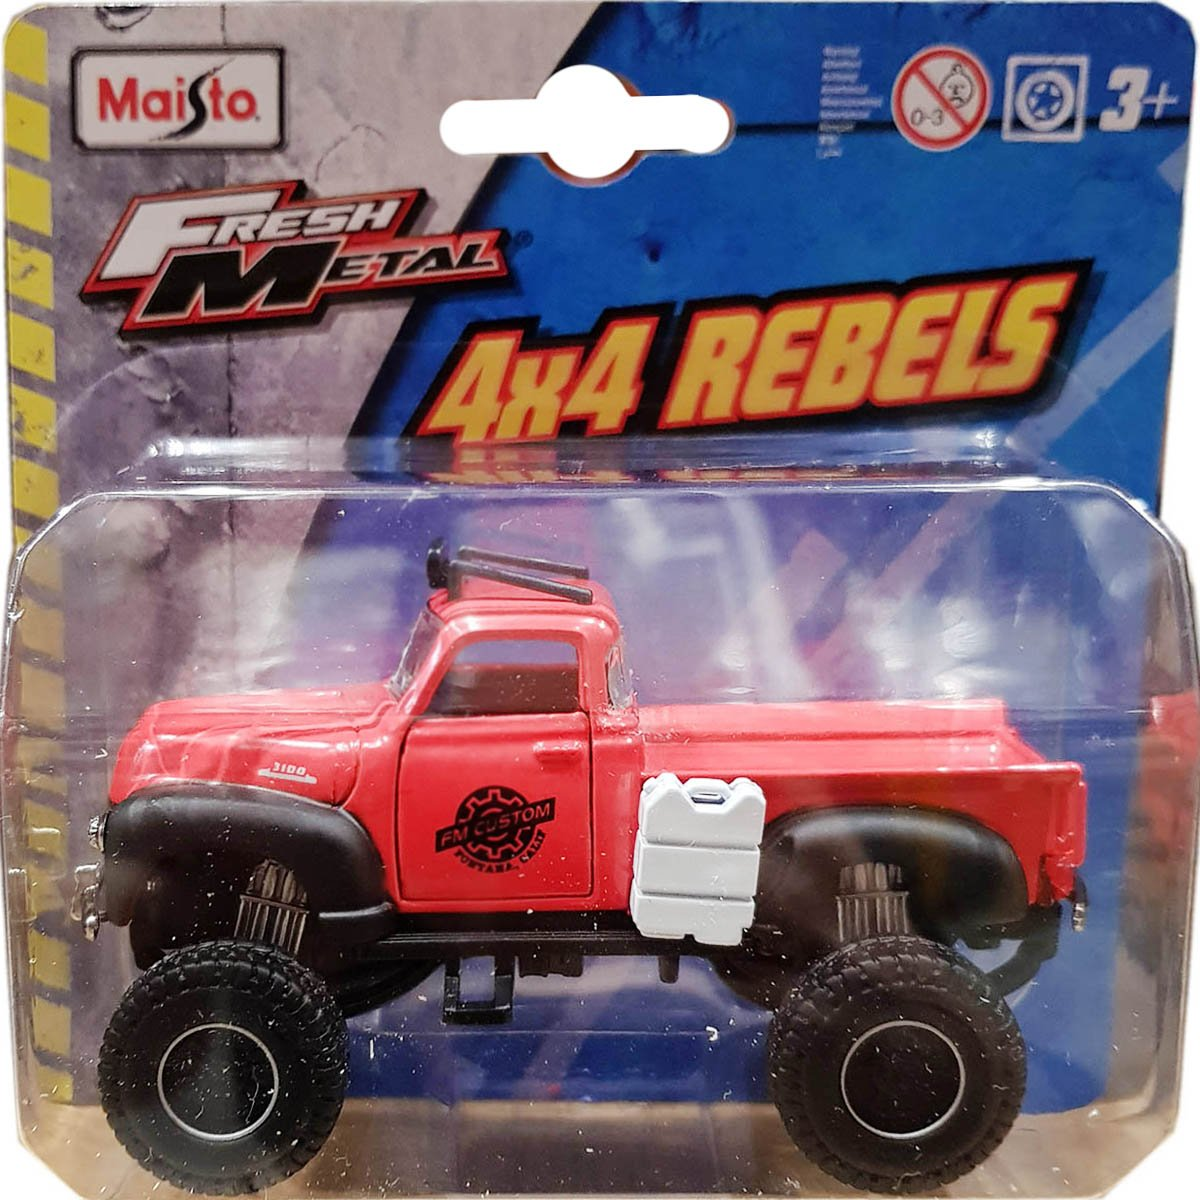 Masinuta Maisto Fresh Metal, 4X4 Rebels, 11 cm, 1:64, Rosu